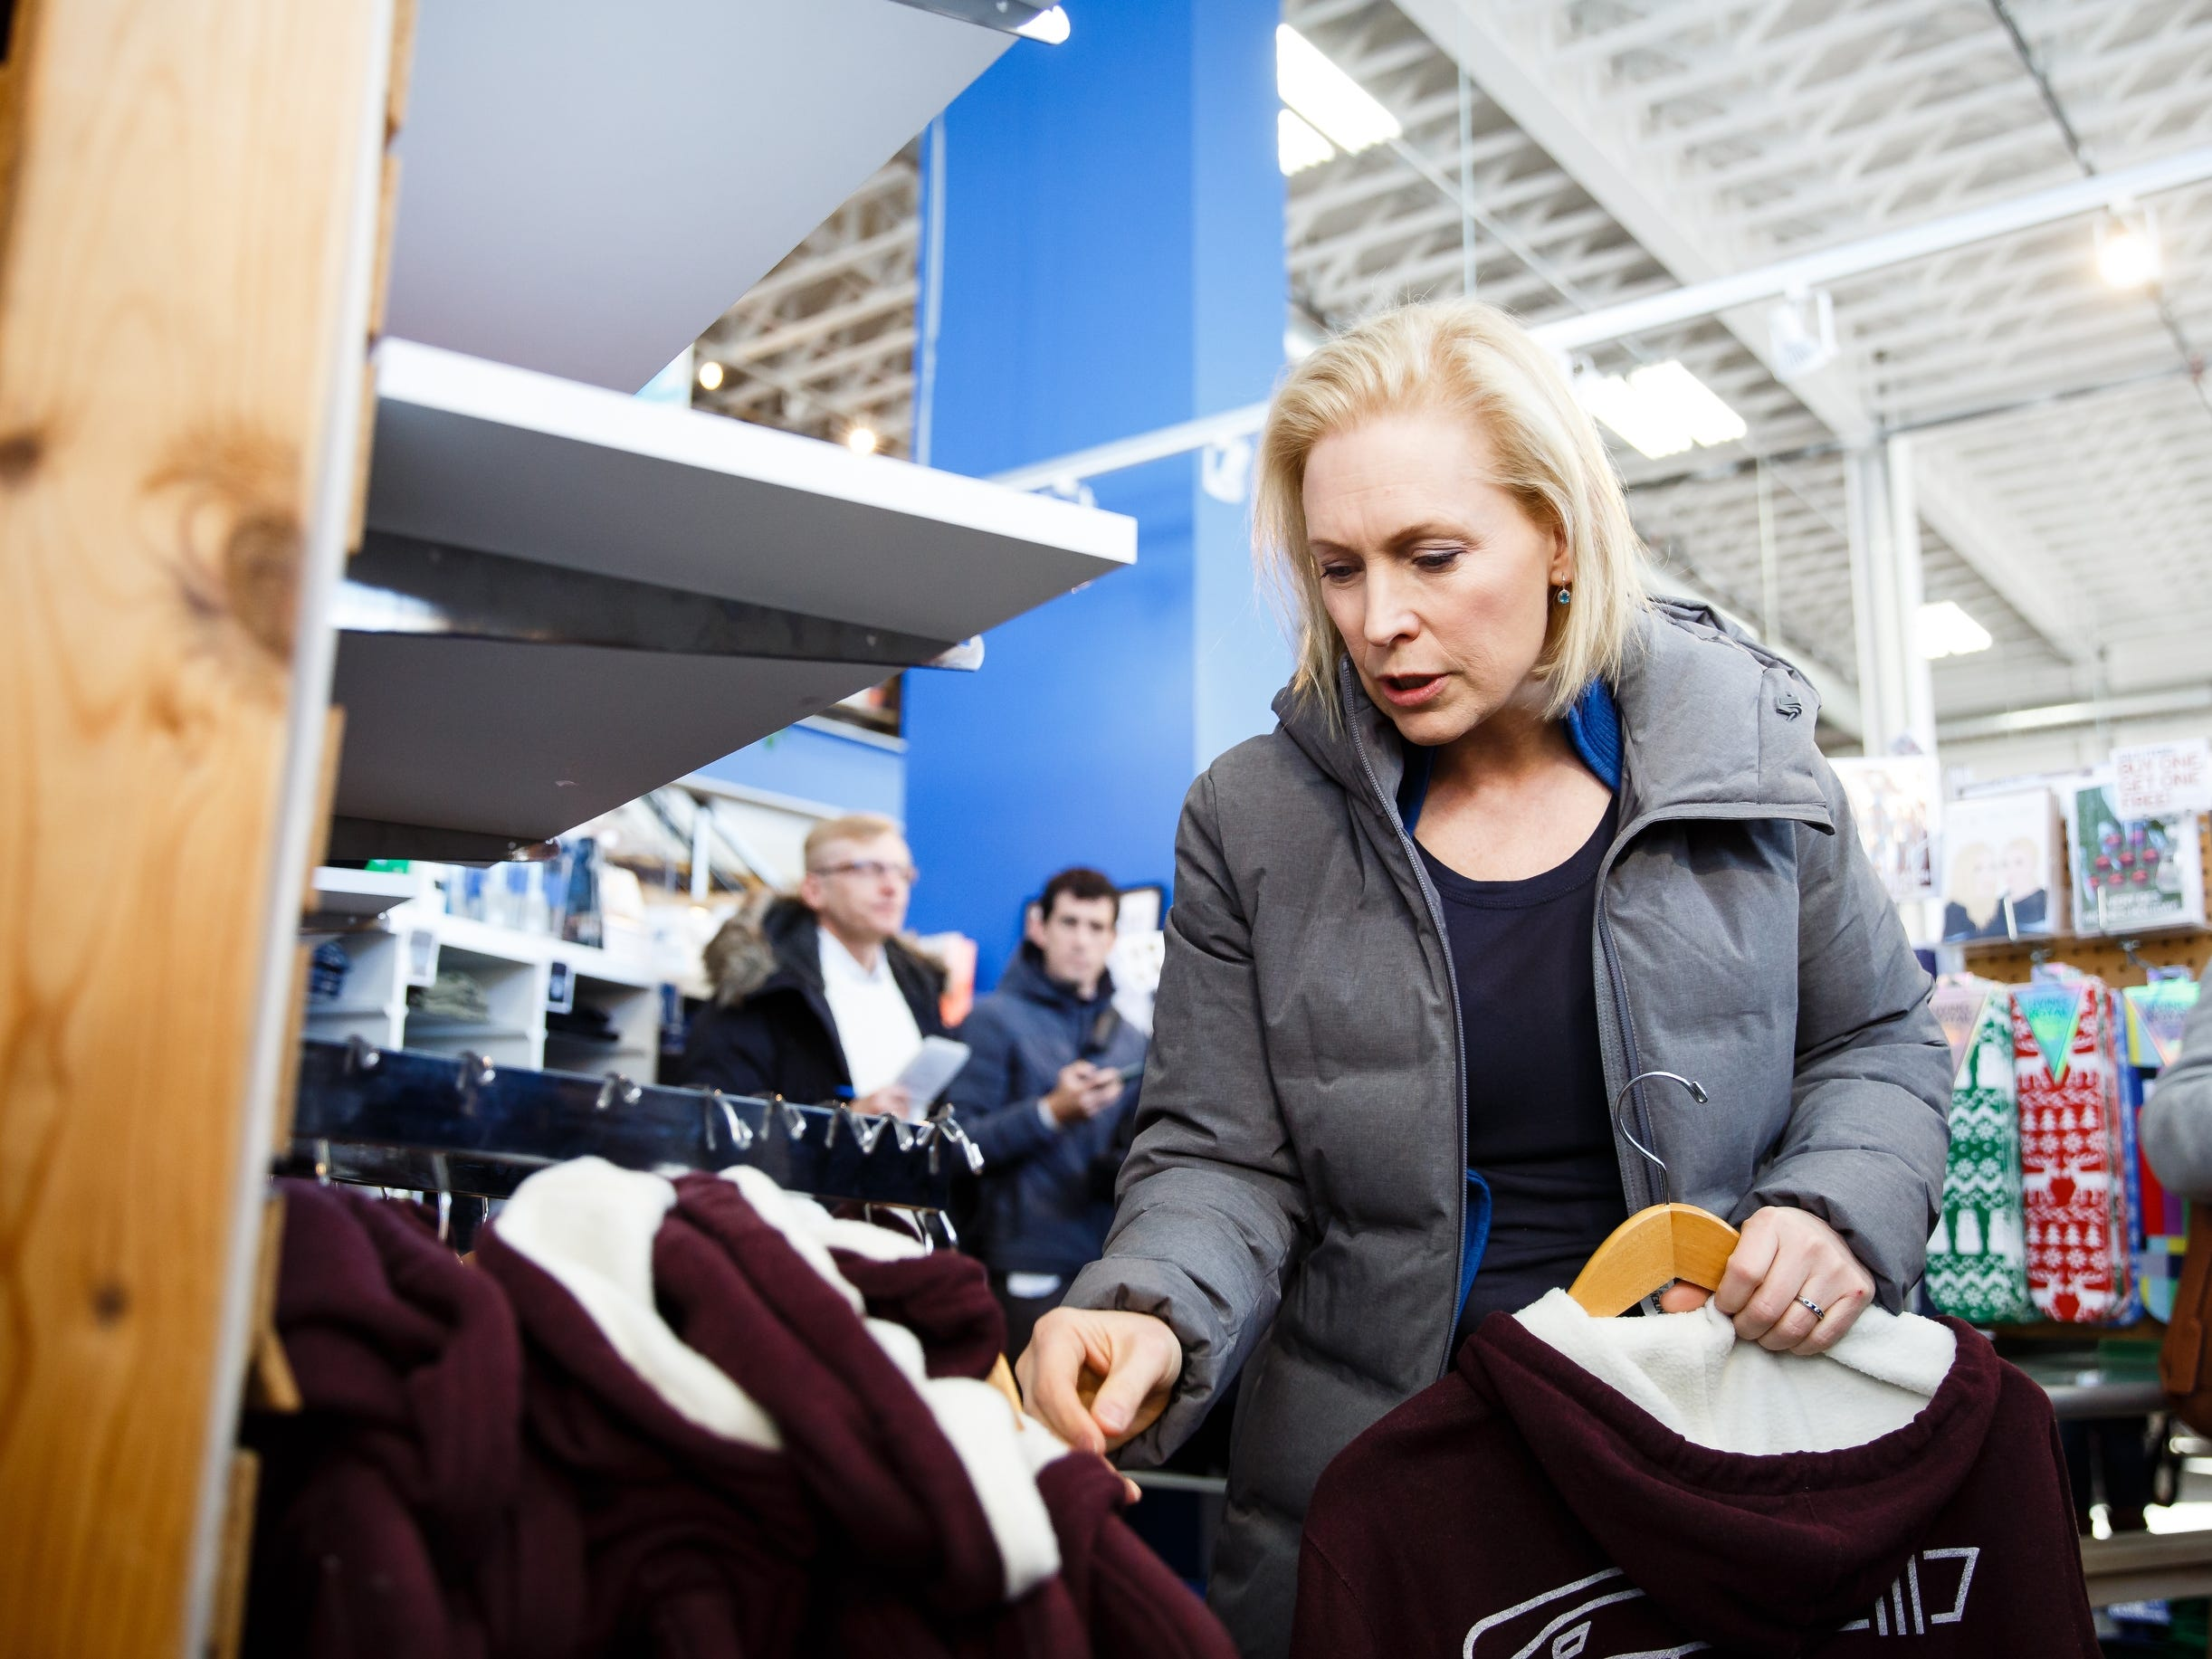 During a walking tour of the East Village, Sen. Kirsten Gillibrand of New York stops at Raygun to look for gifts for her family and talk to voters on Saturday, Jan. 19, 2019, in Des Moines.